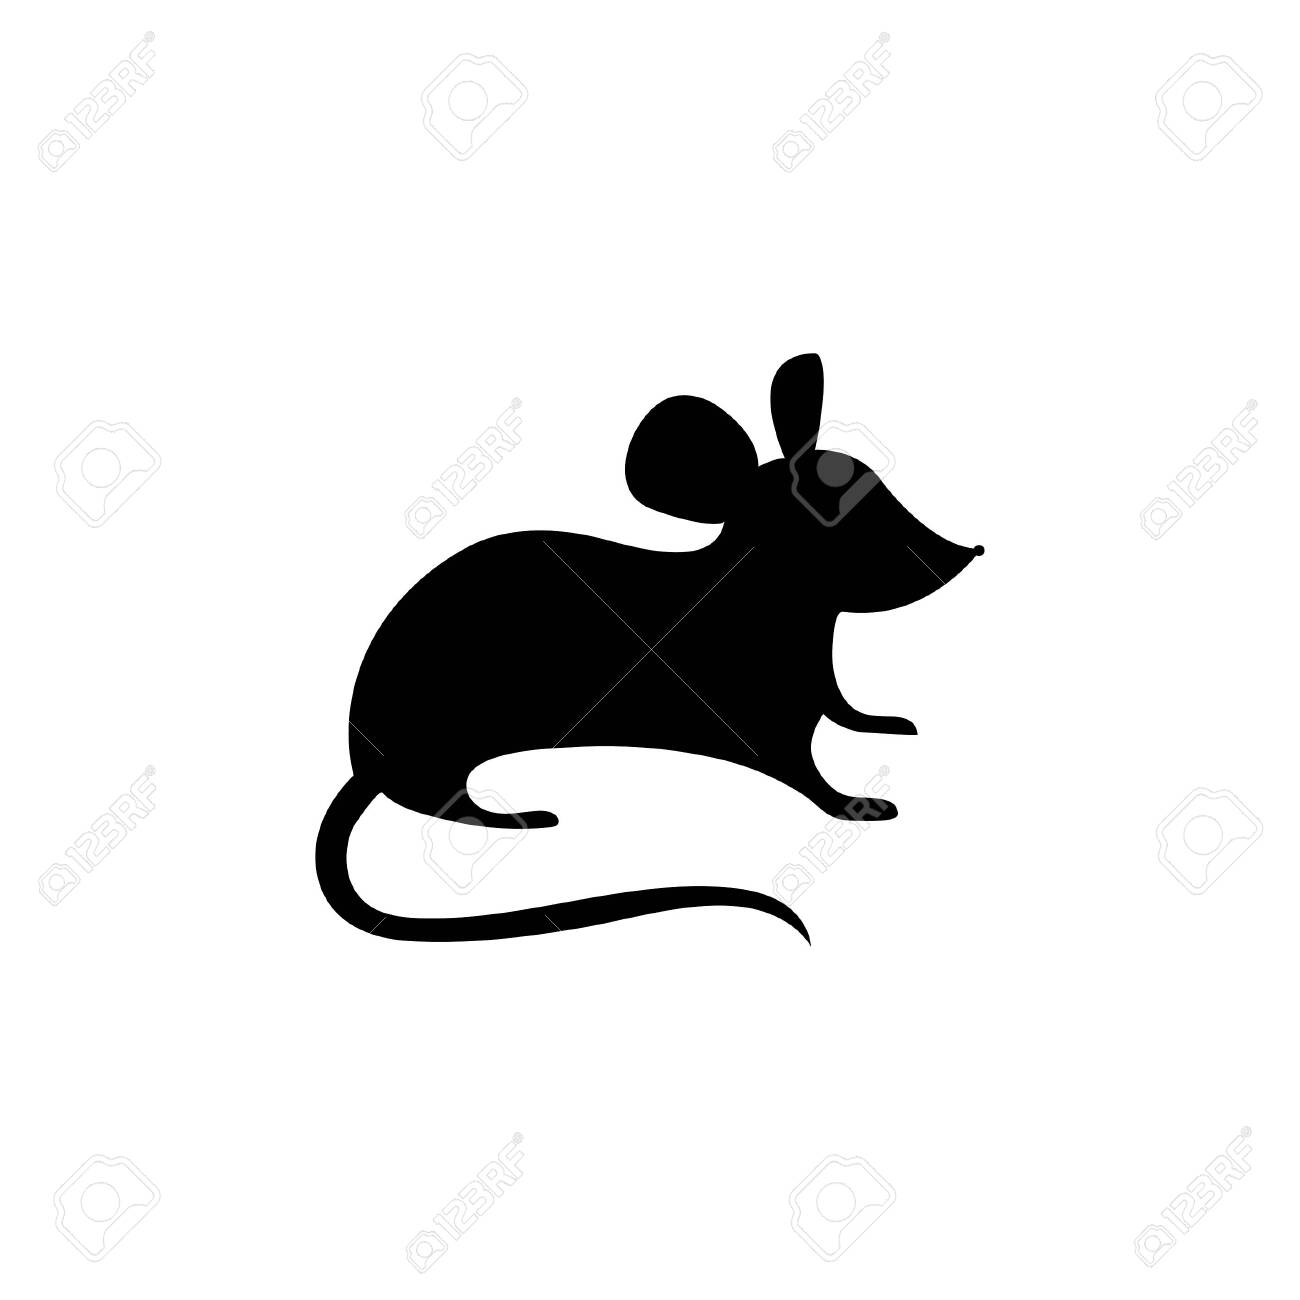 mouse vector icon - 140456551